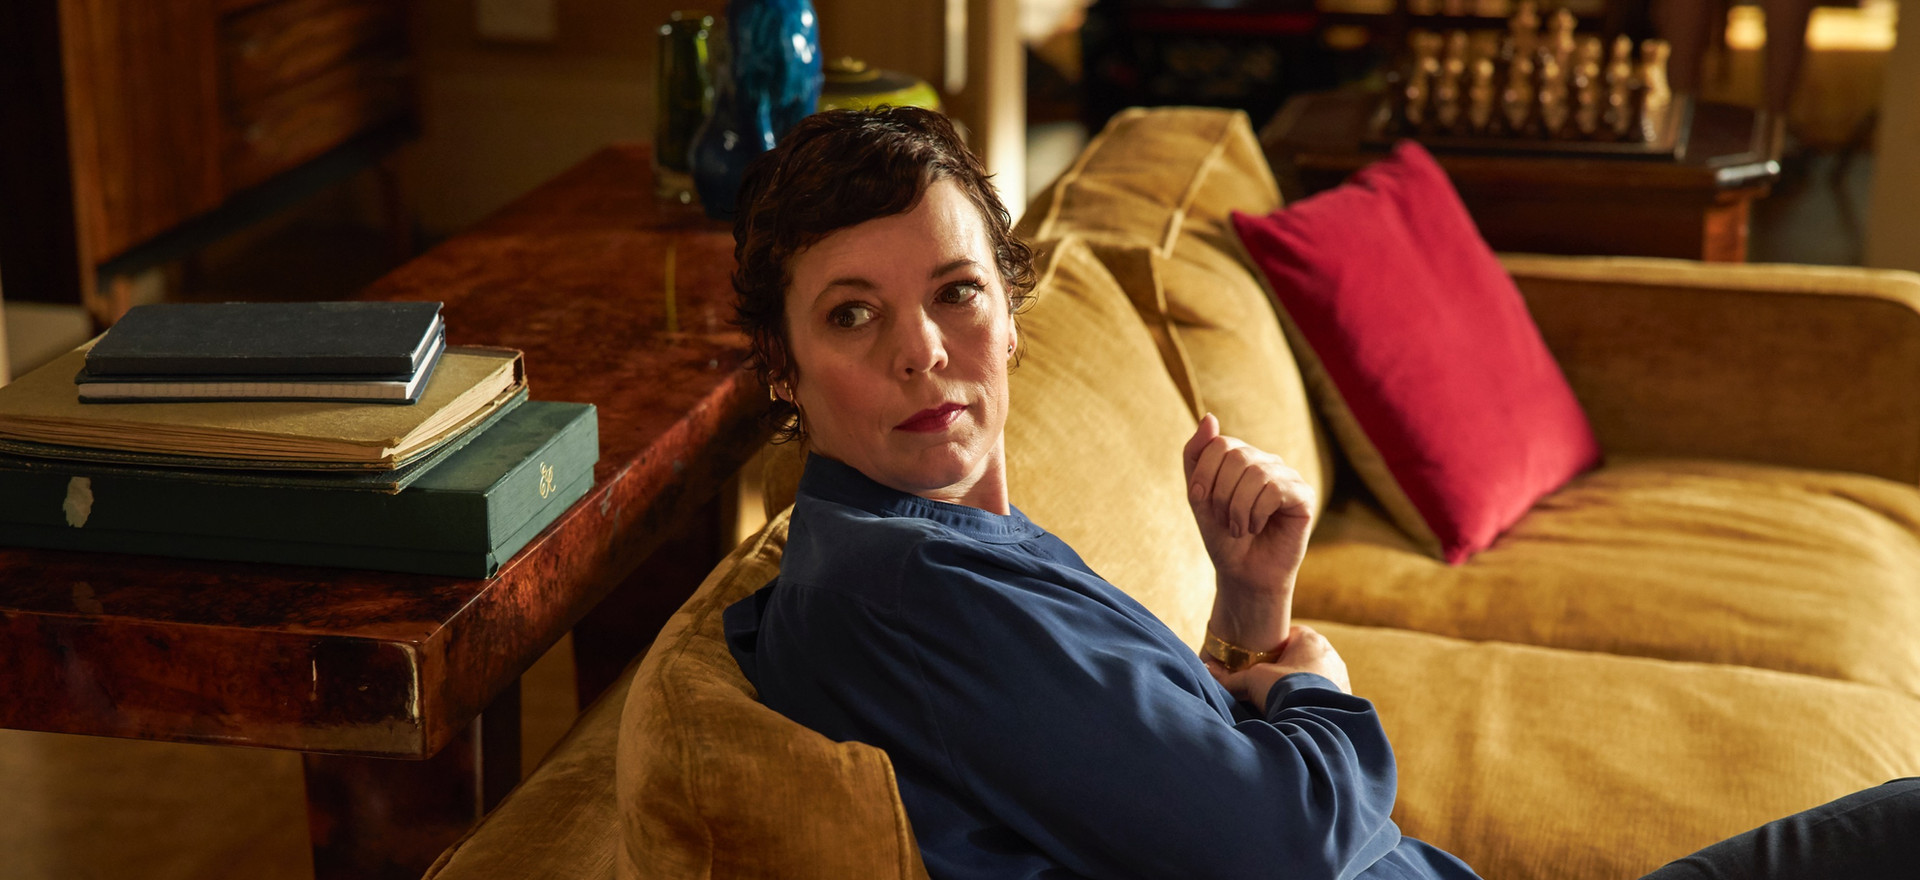 olivia colman plays anne . The Father . Directed by Florian Zeller . Staring Anthony Hopkins, Olivia Colman, Imogen Poots, Rufus Sewell, Olivia Williams, Mark Gattis